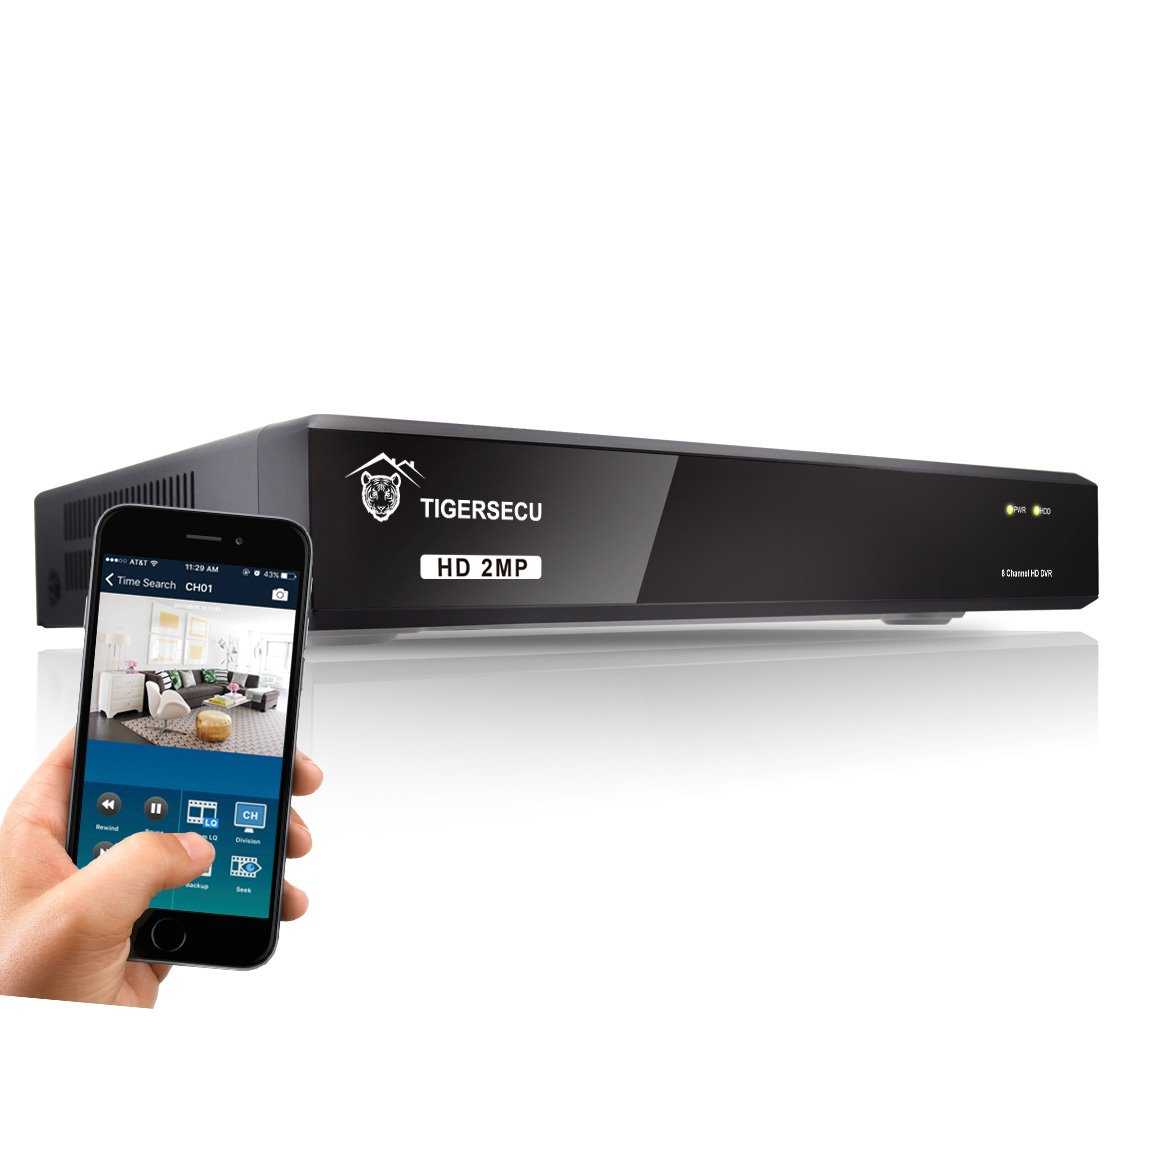 TIGERSECU Super HD 1080P 8-Channel DVR Video Security Recording System (Cameras and Hard Drive Not Included)